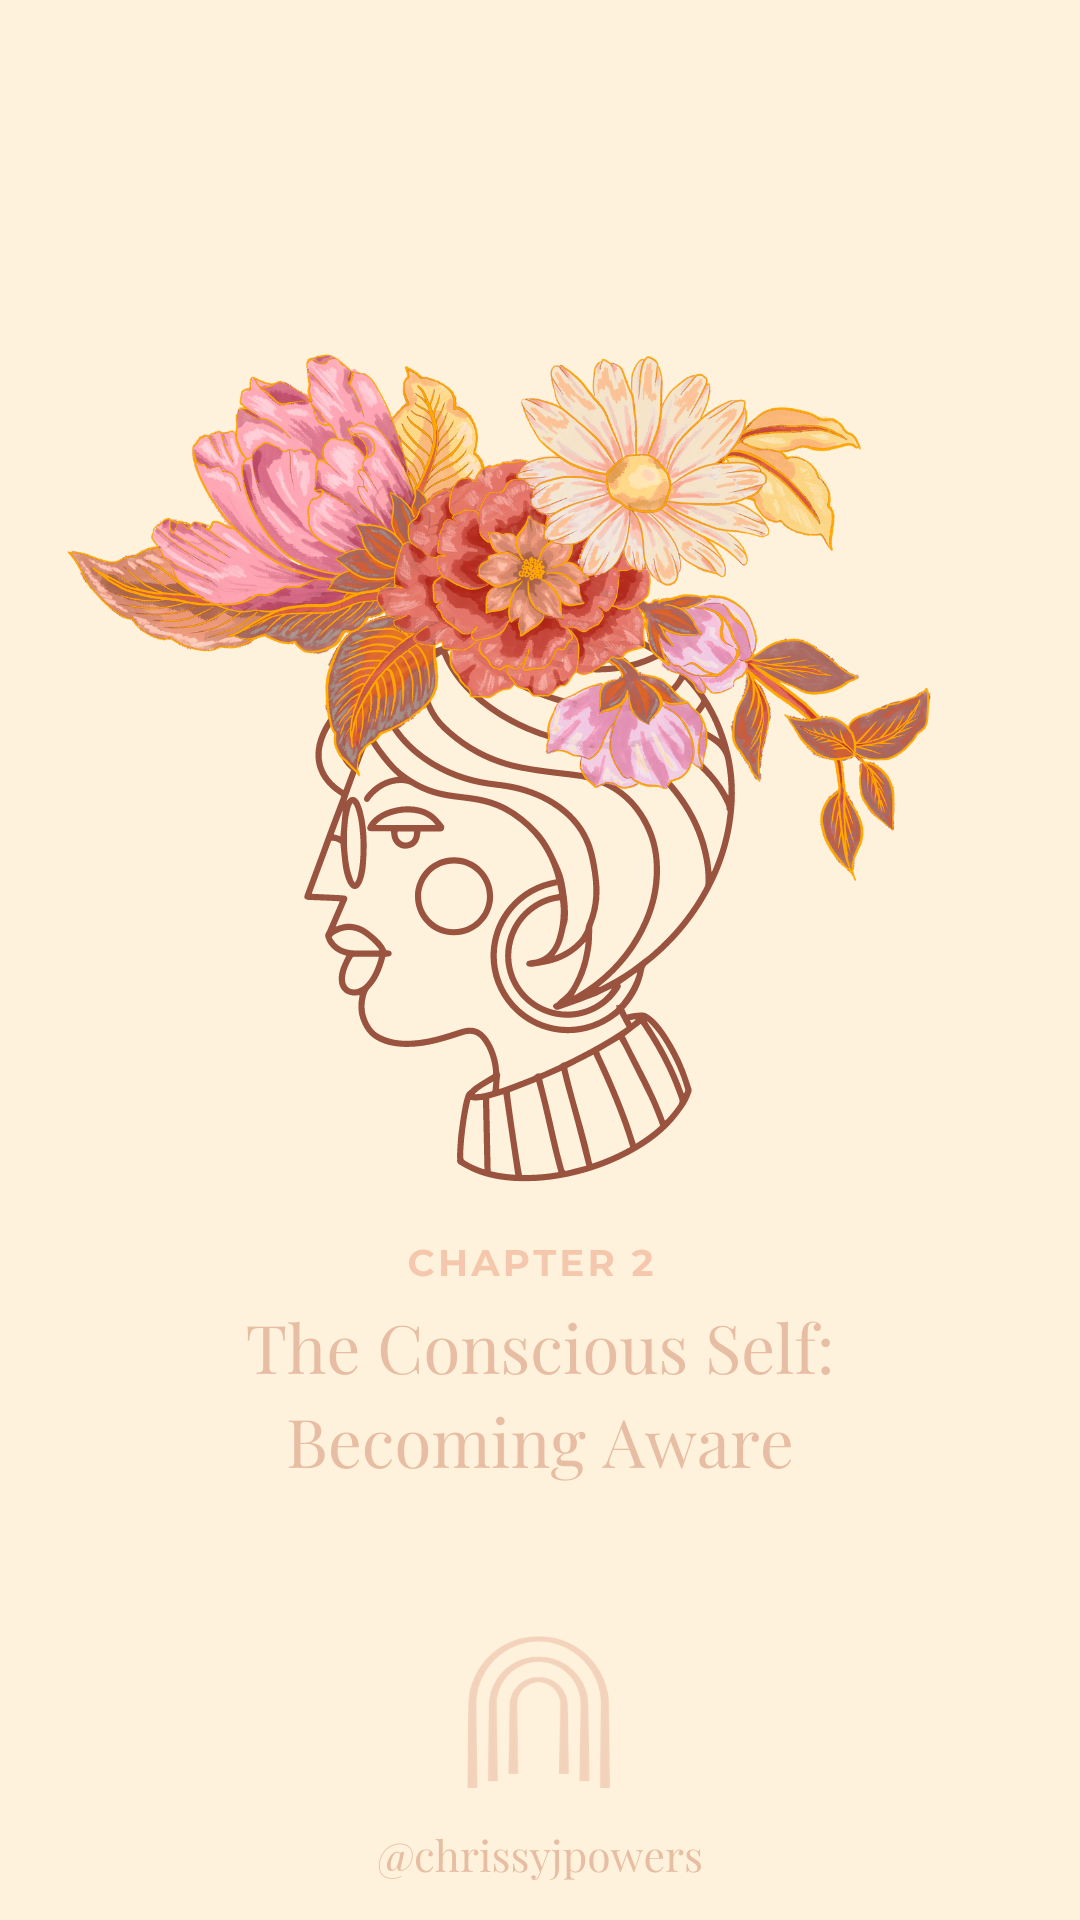 Ch 2 The Conscious Self: Becoming Aware